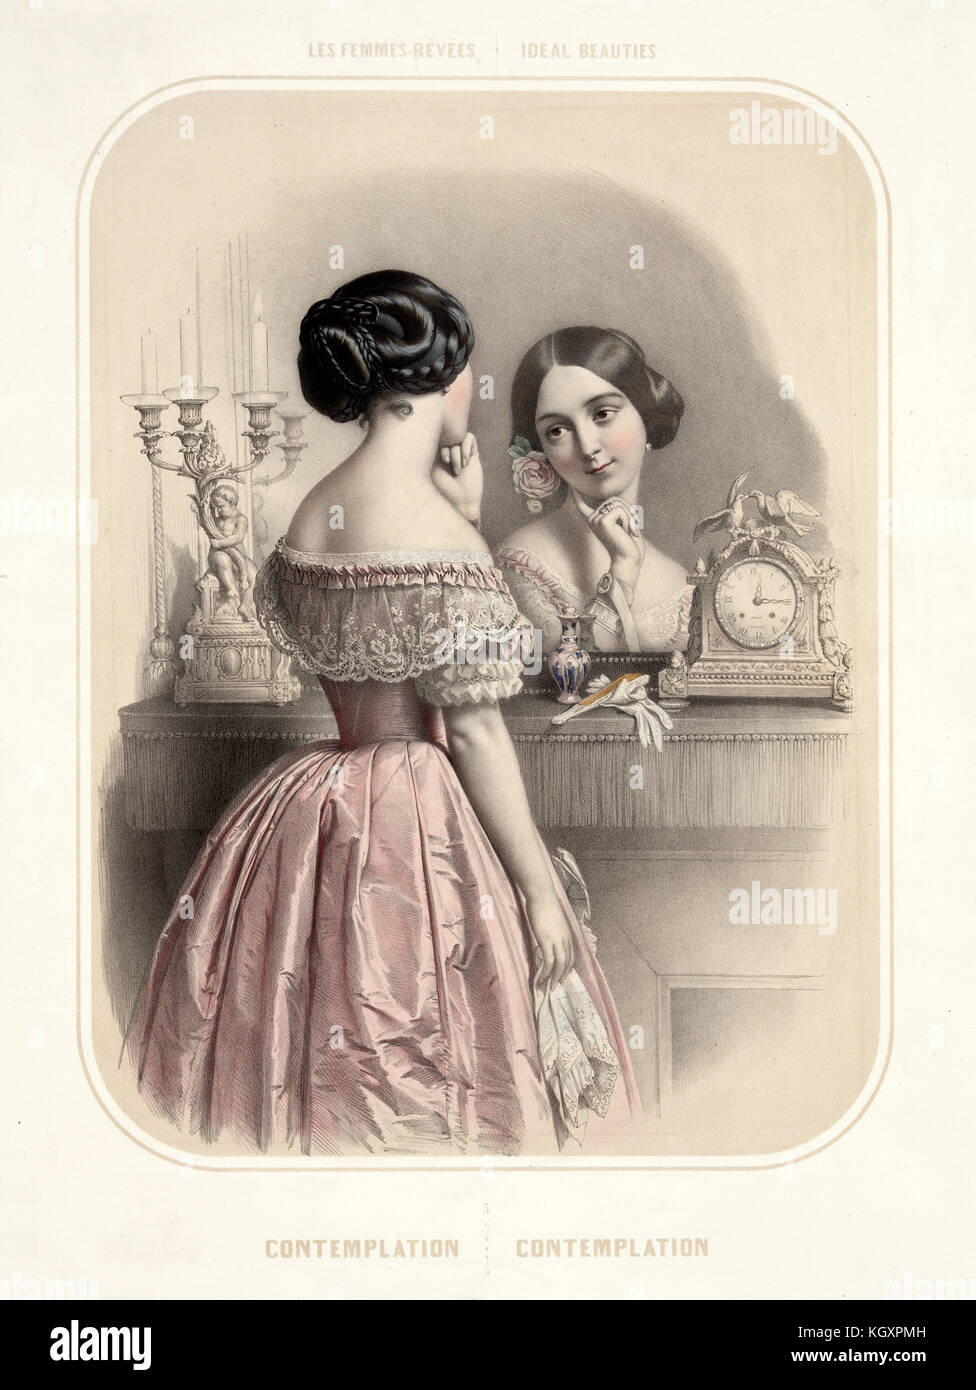 Old illustration depicting woman looking at herself in a mirror. By Alophe, publ. in New York, 1851 - Stock Image